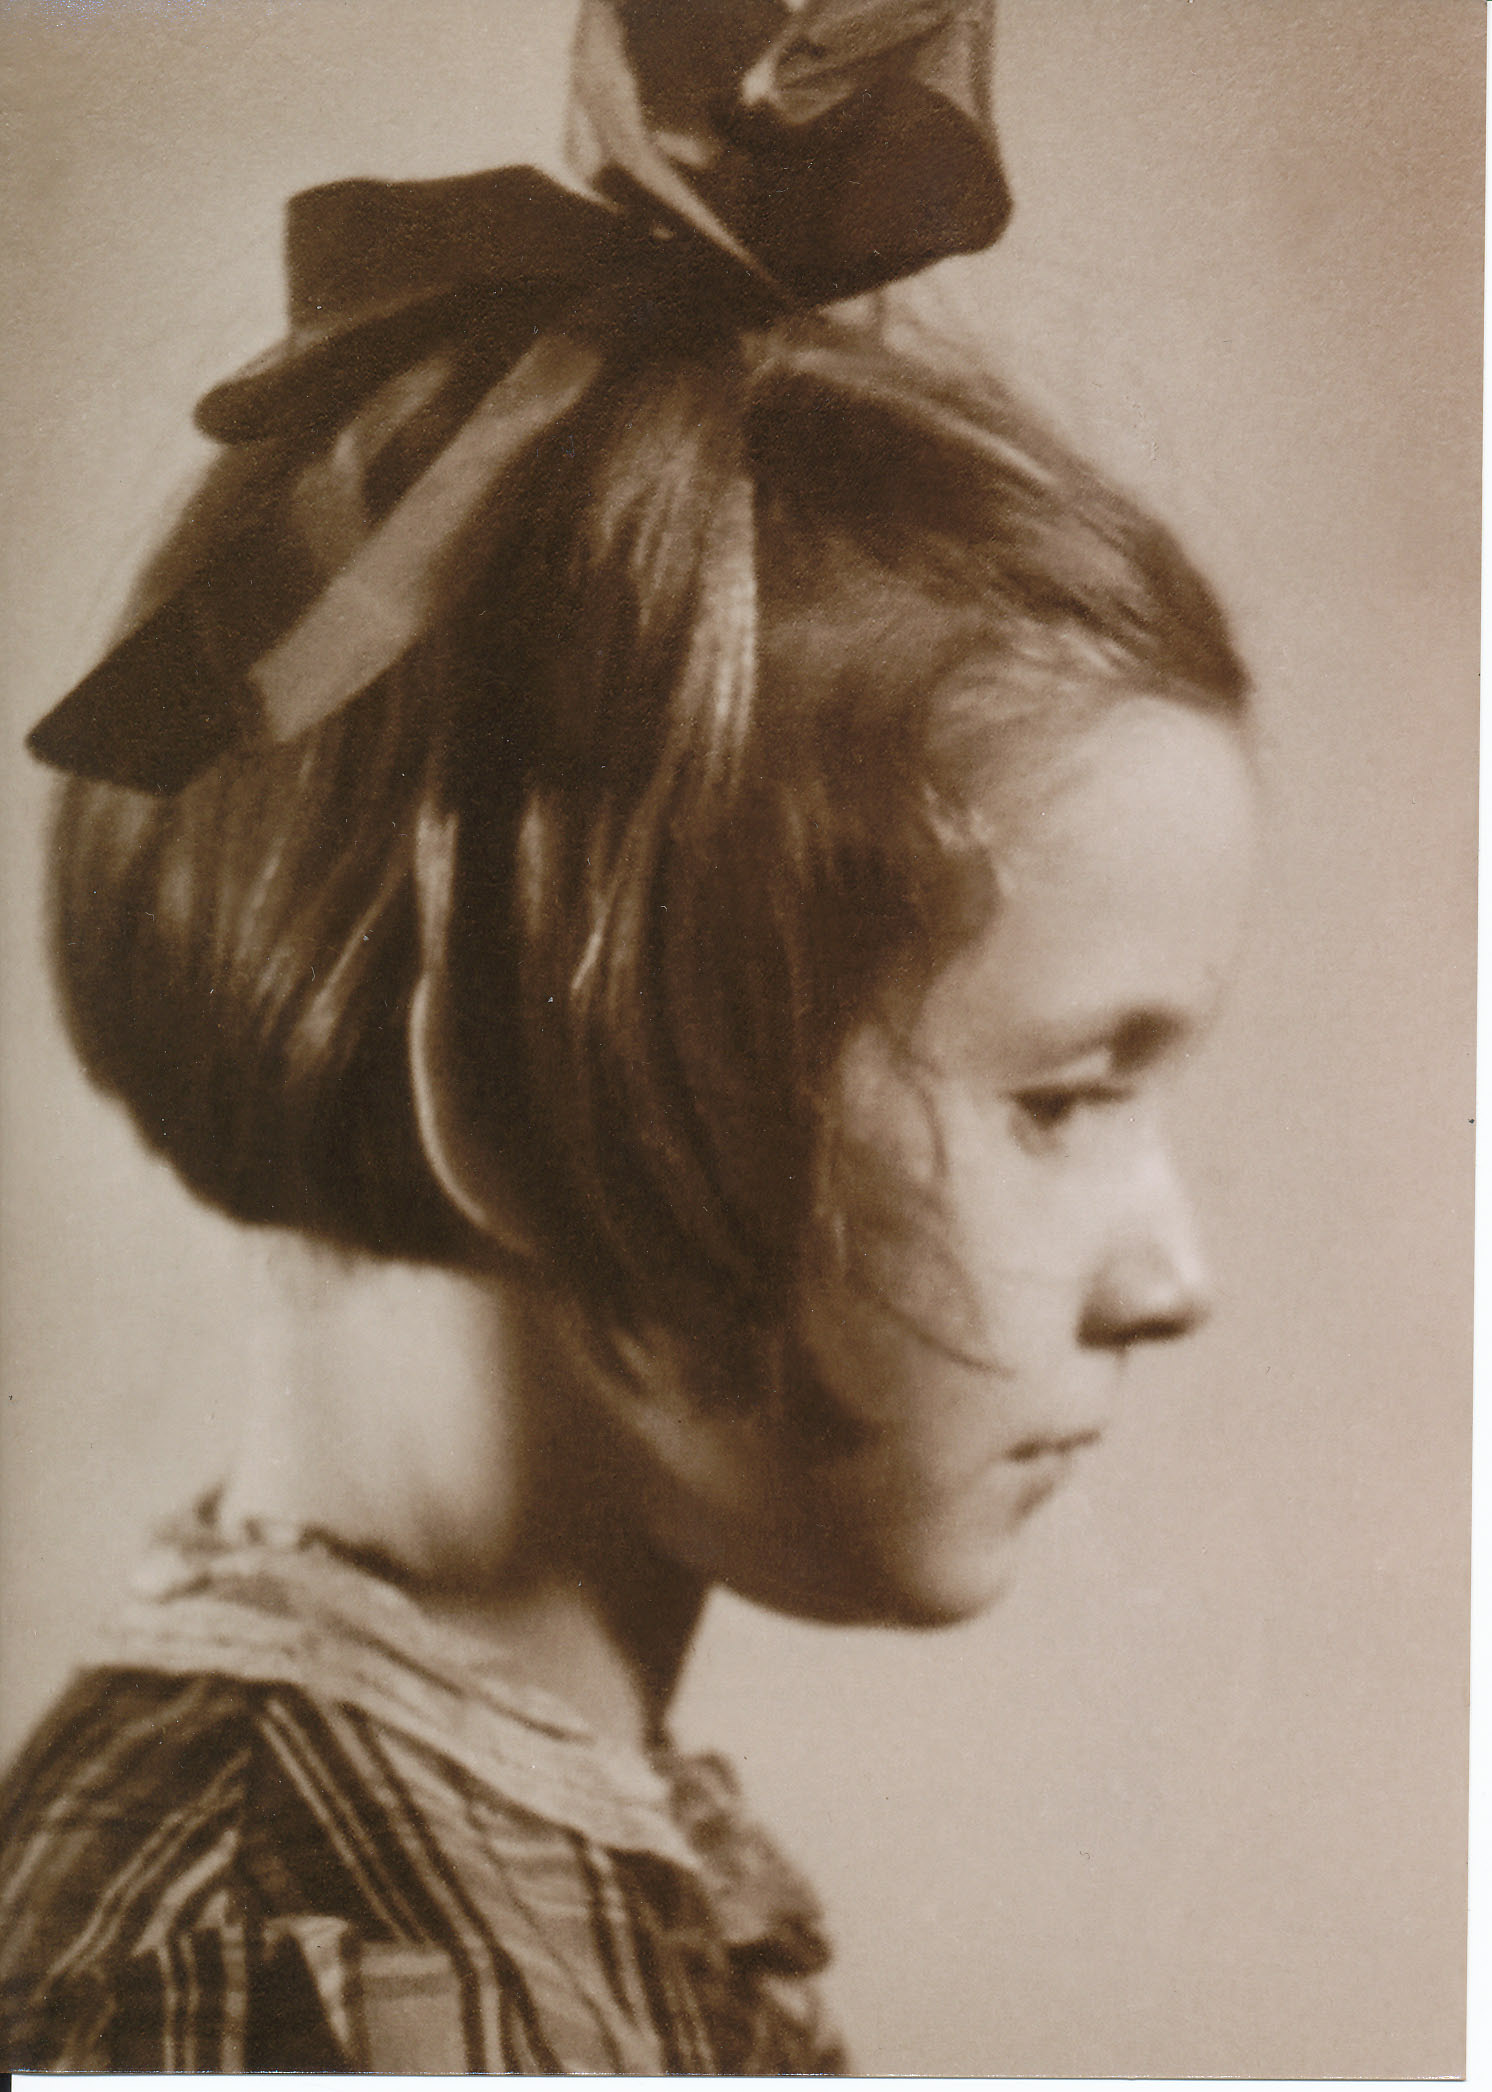 Marion at age 7